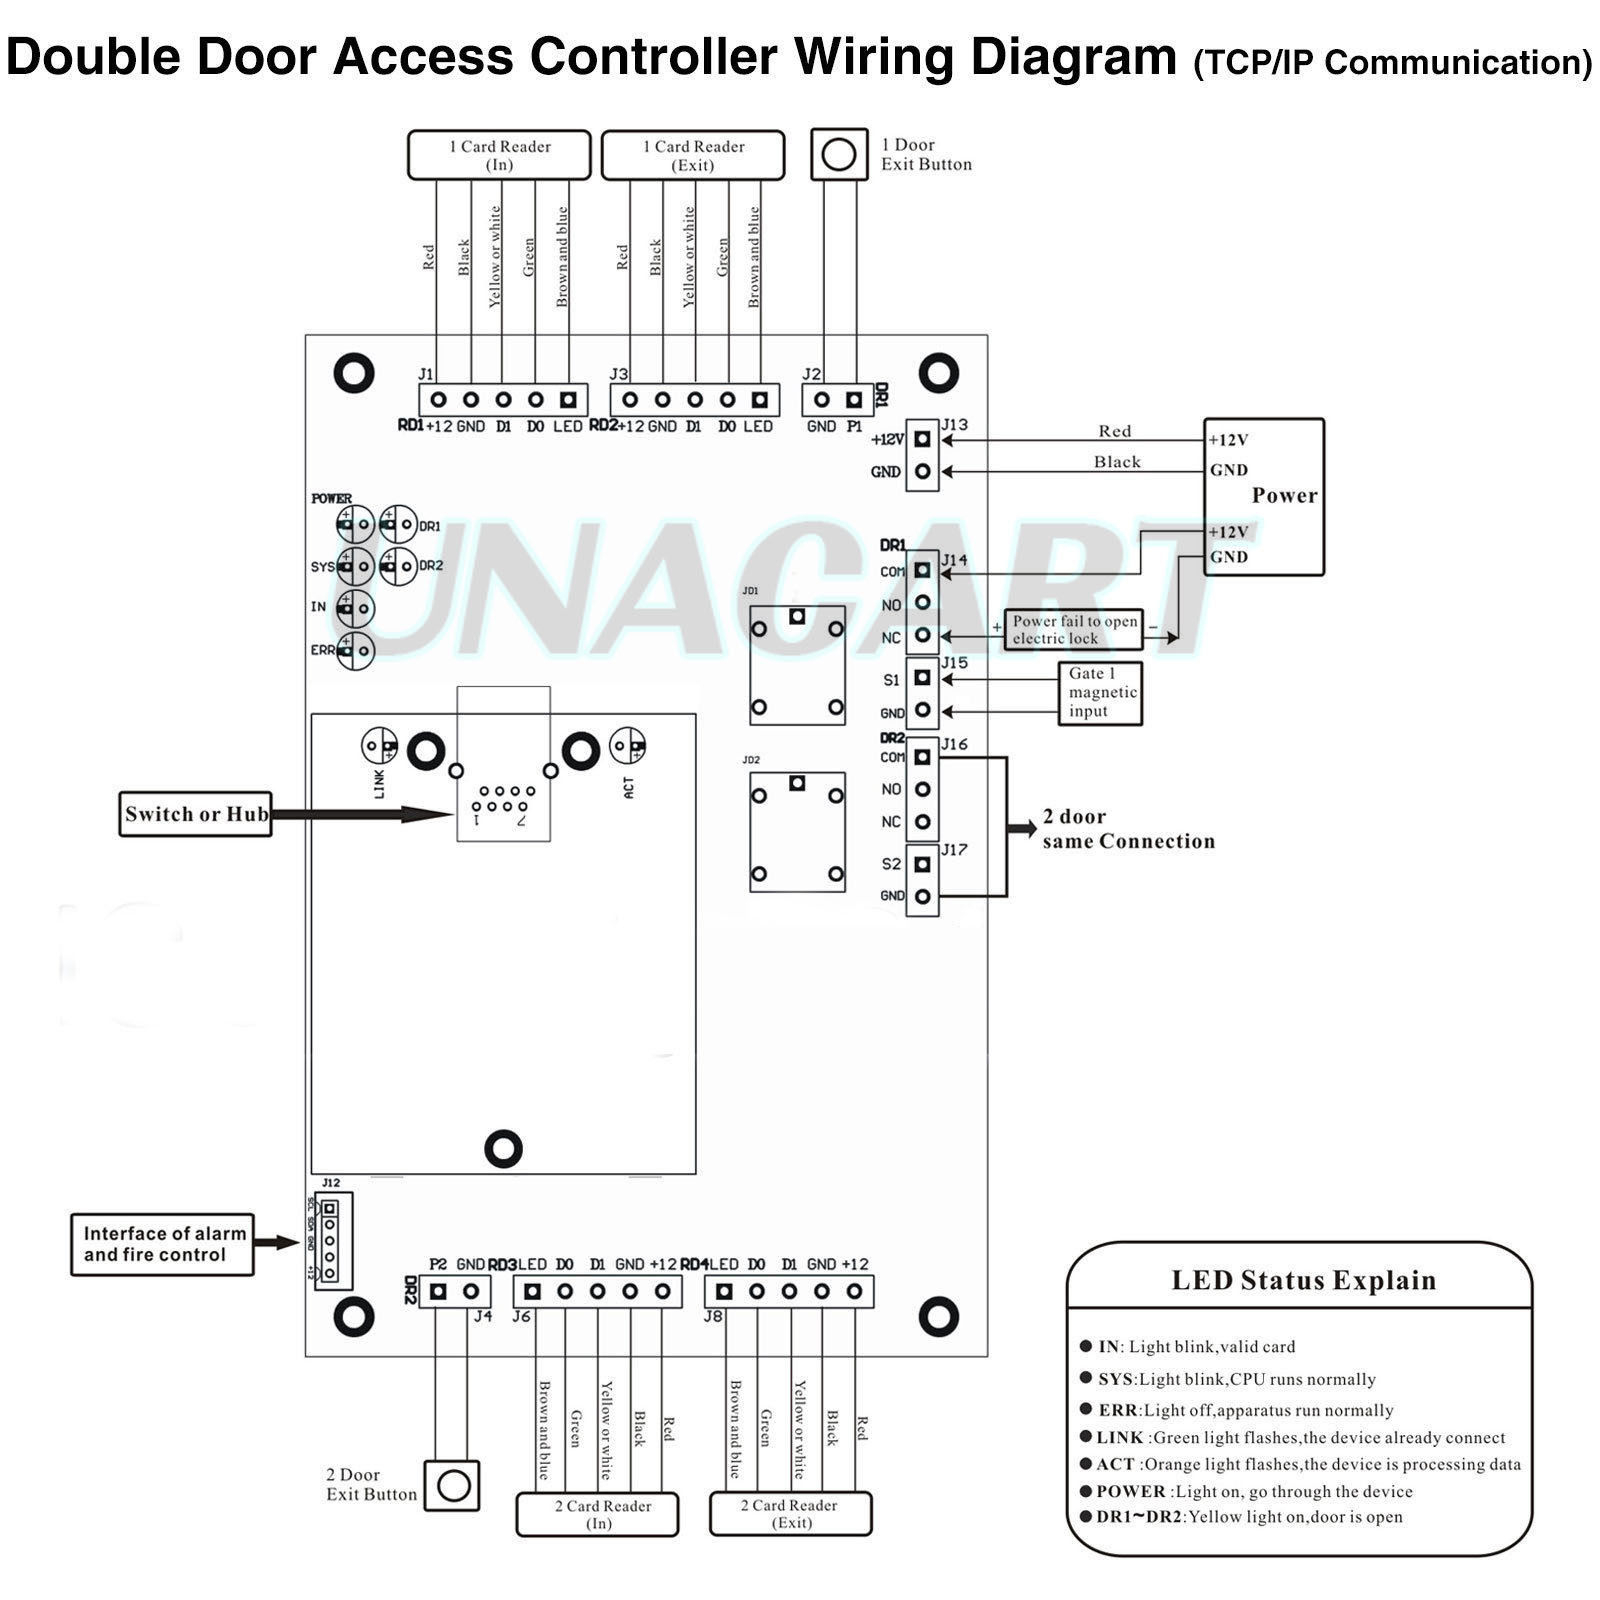 Card Reader Wiring Diagram